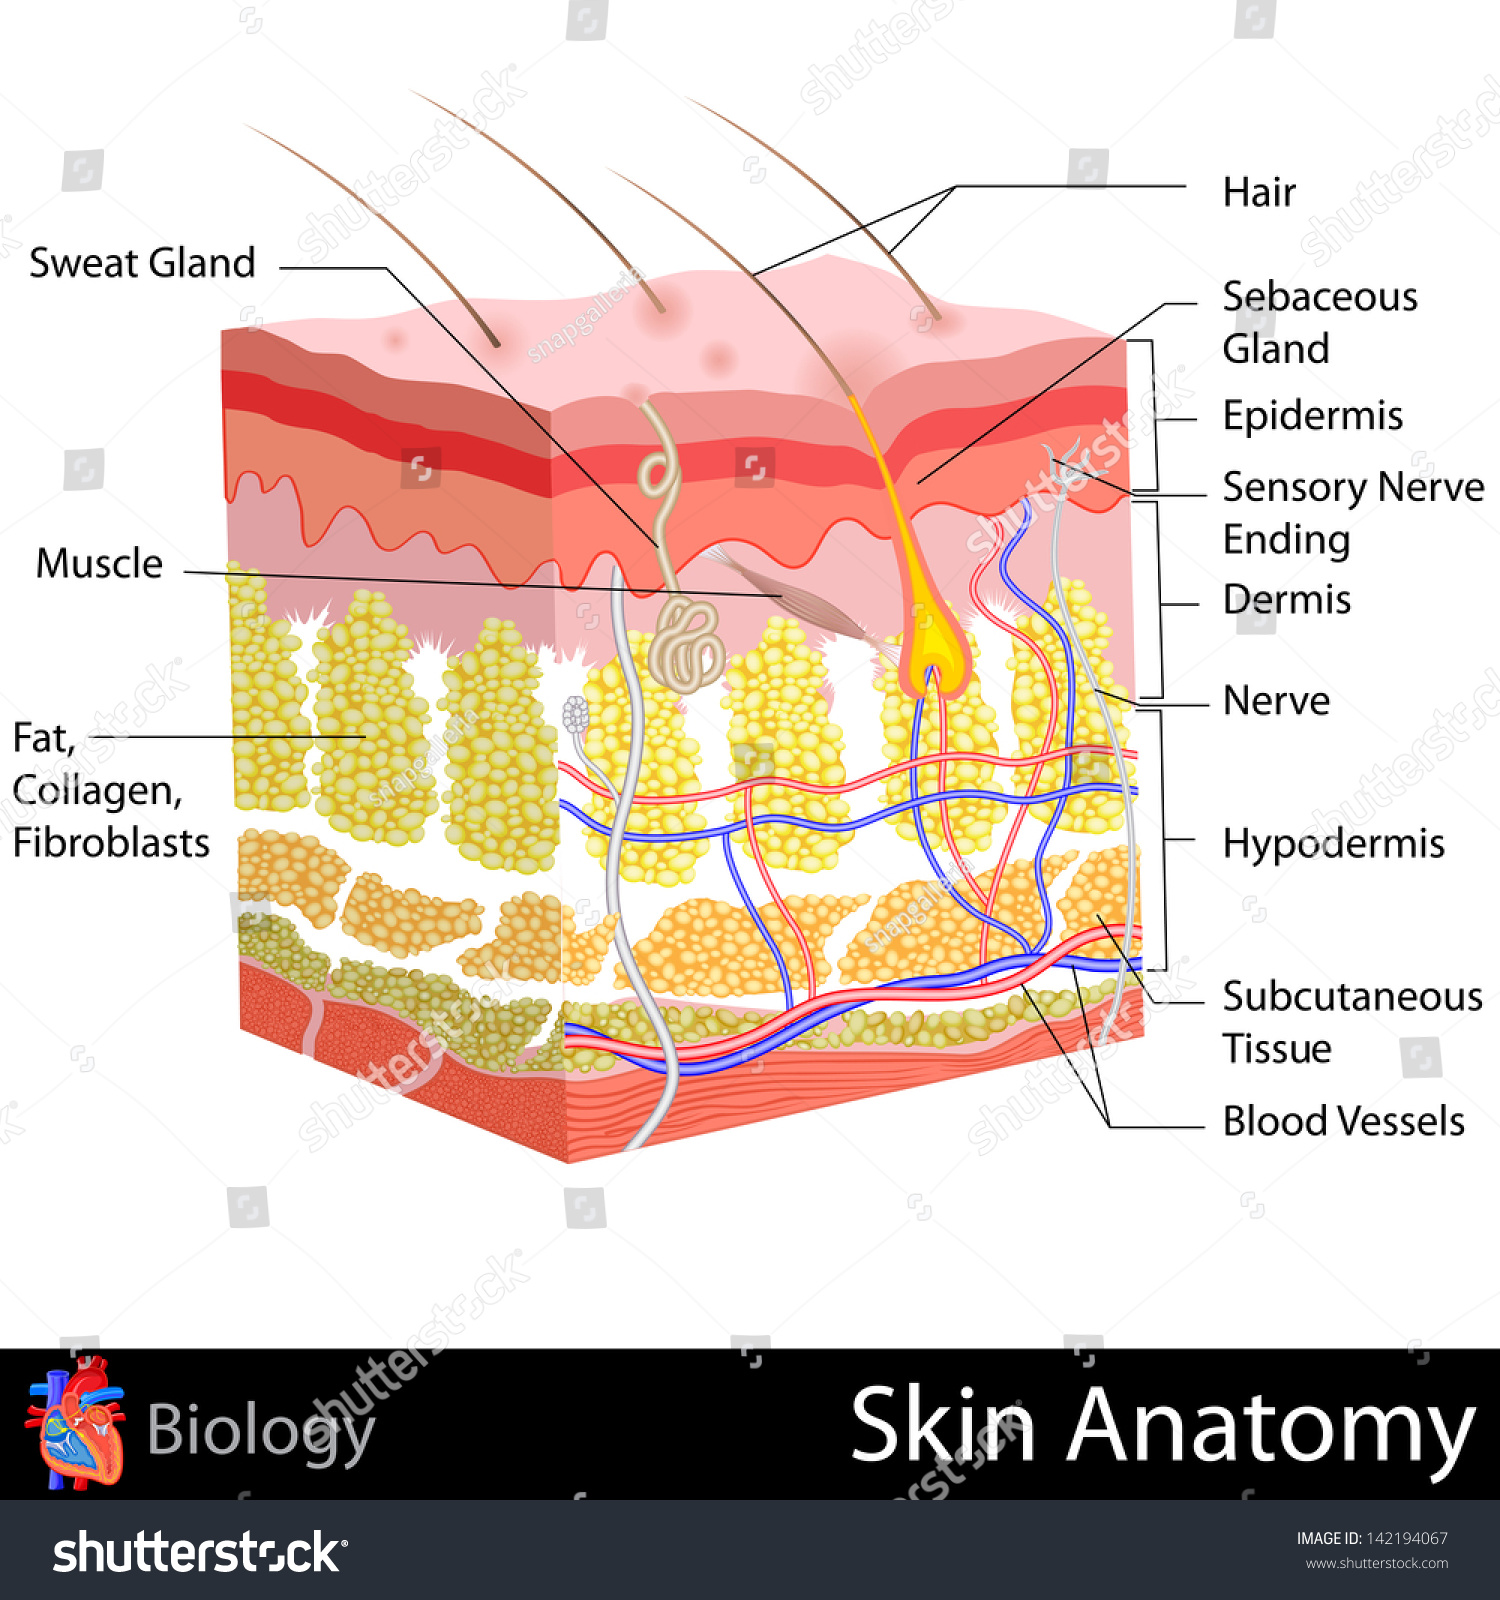 Easy Edit Vector Illustration Skin Anatomy Stock Vector (2018 ...